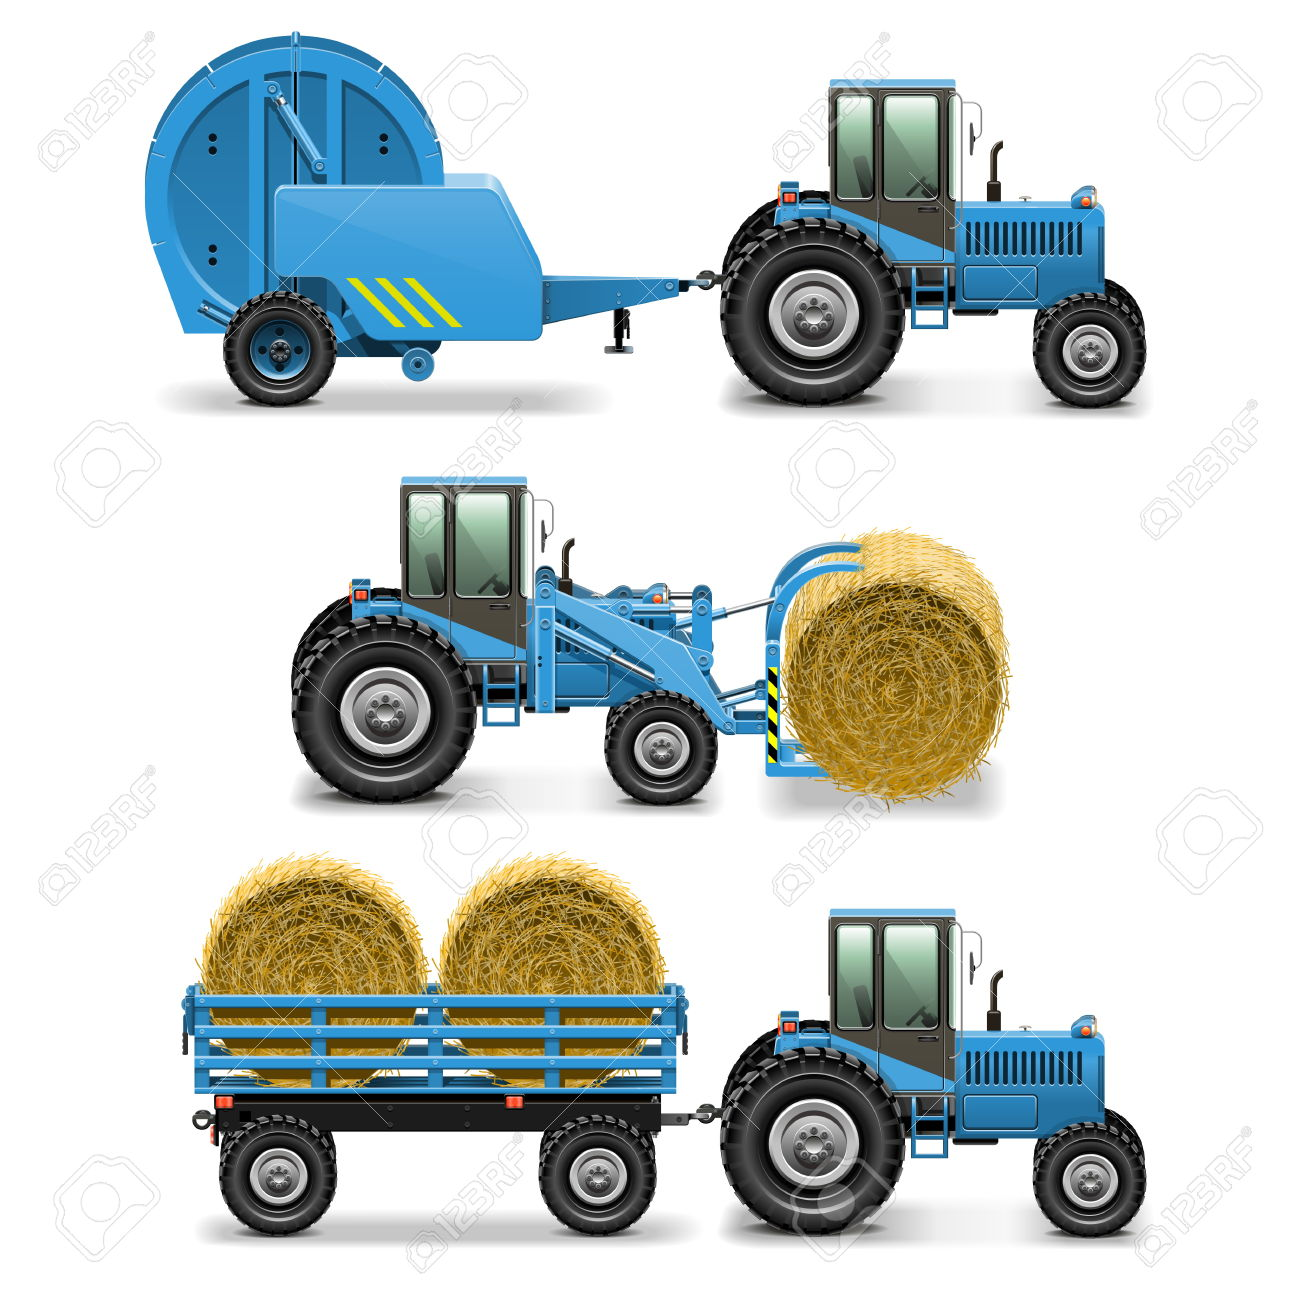 Vector Agricultural Tractor Set 5 Royalty Free Cliparts, Vectors.